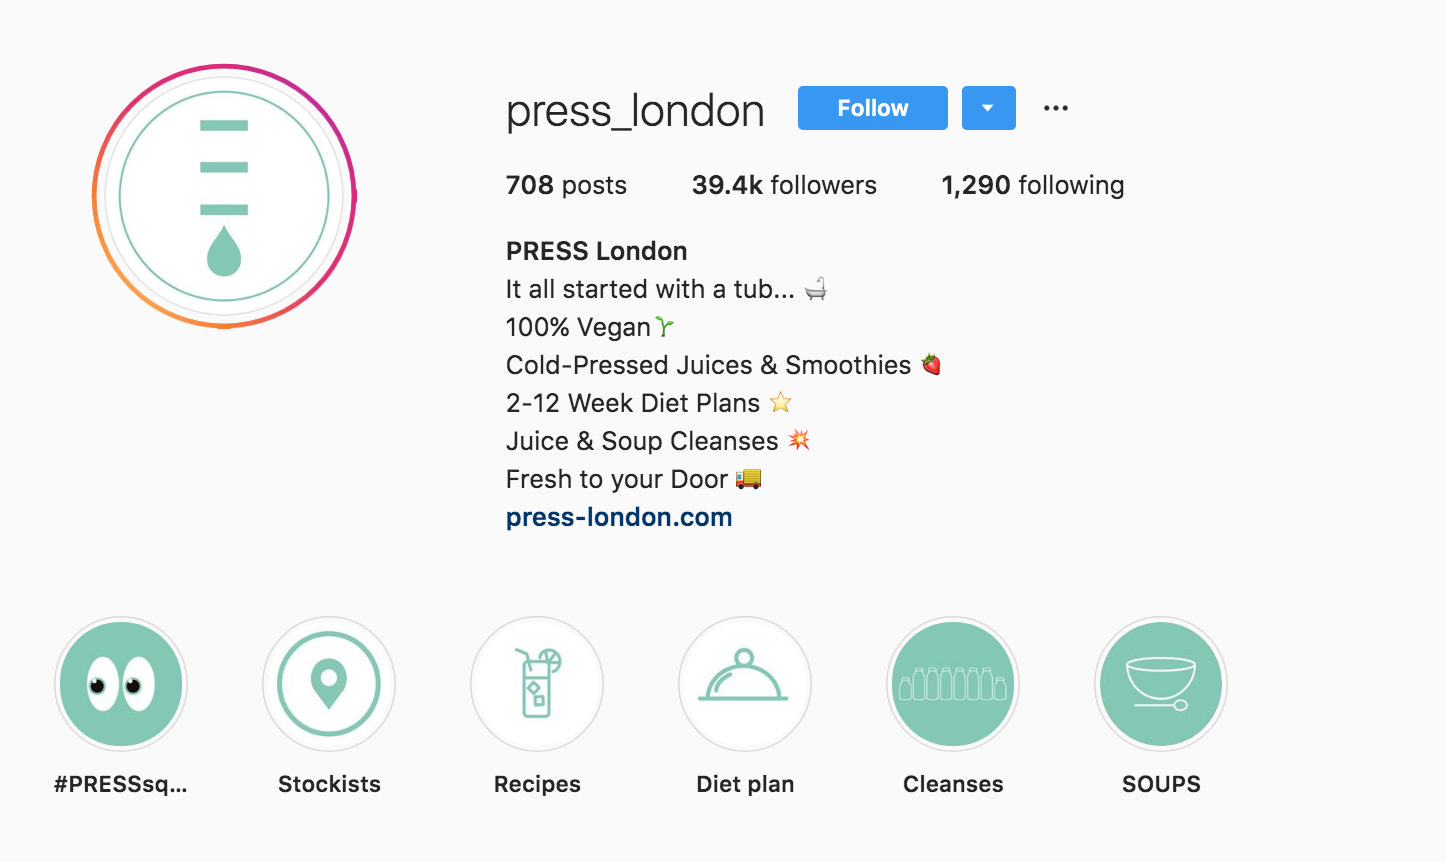 Instagram Bio Ideas: 30 Examples With the Perfect Bio (2021)